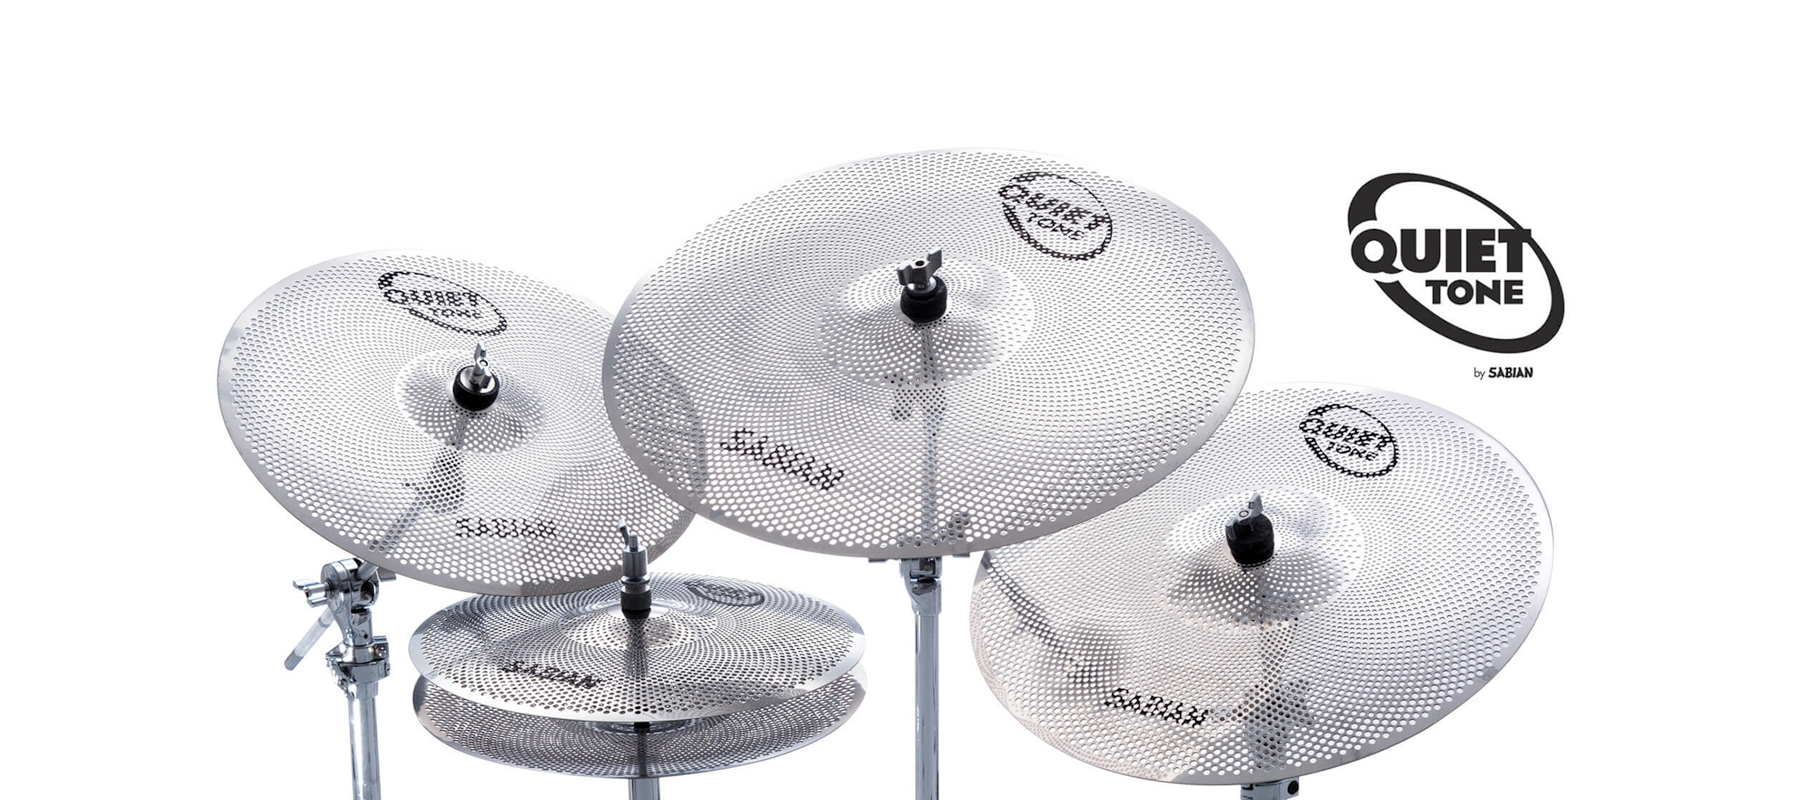 Practice anywhere with Sabian's new Quiet Tone Cymbals! (VIDEO)